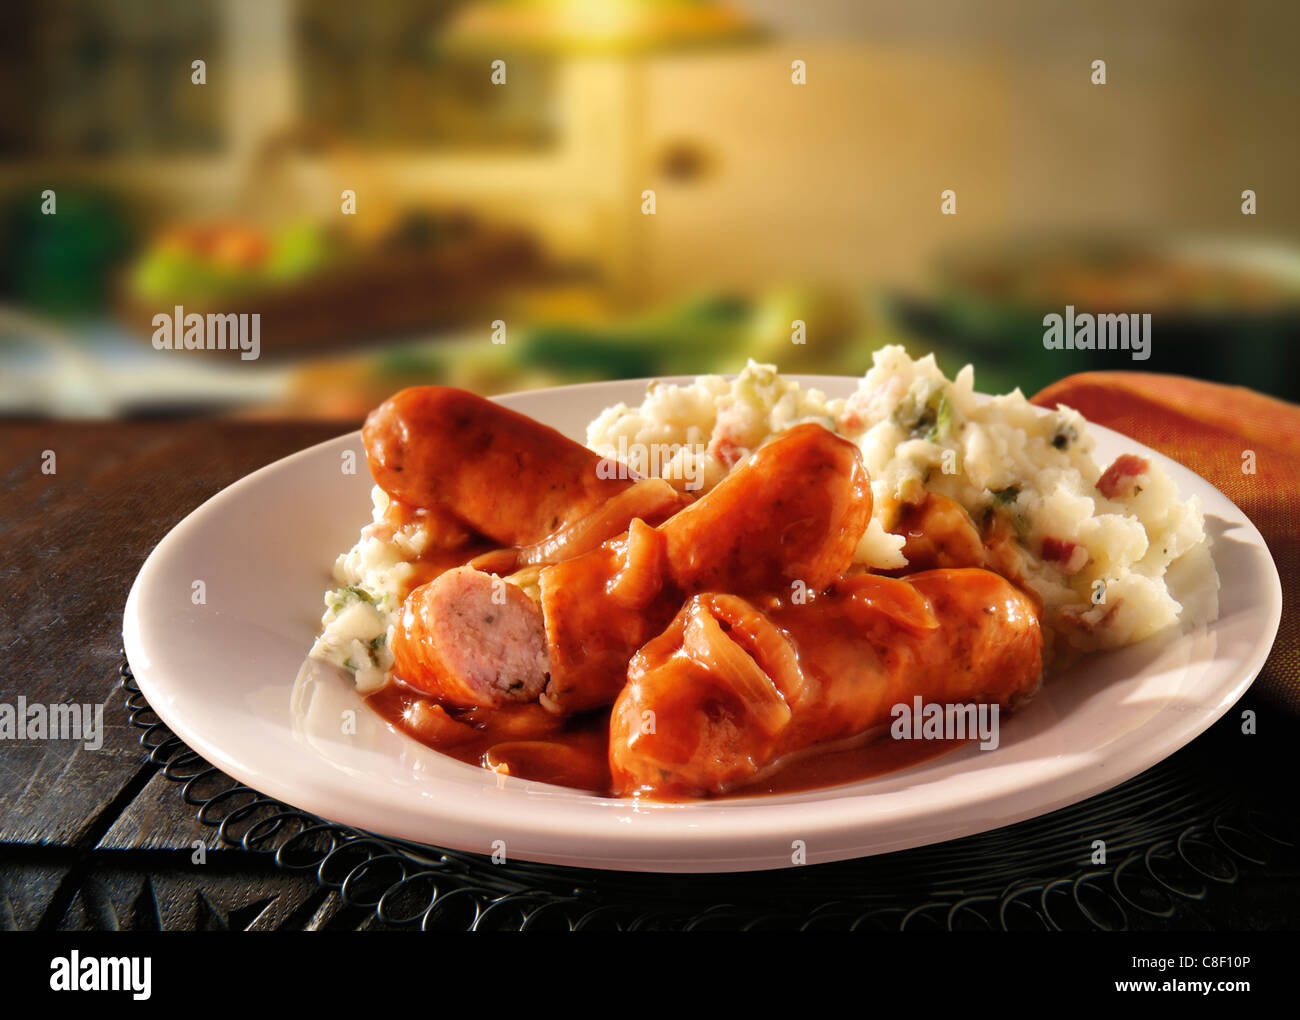 Traditional cooked Sausage and mash served on a white plate in a table setting ready to eat Stock Photo